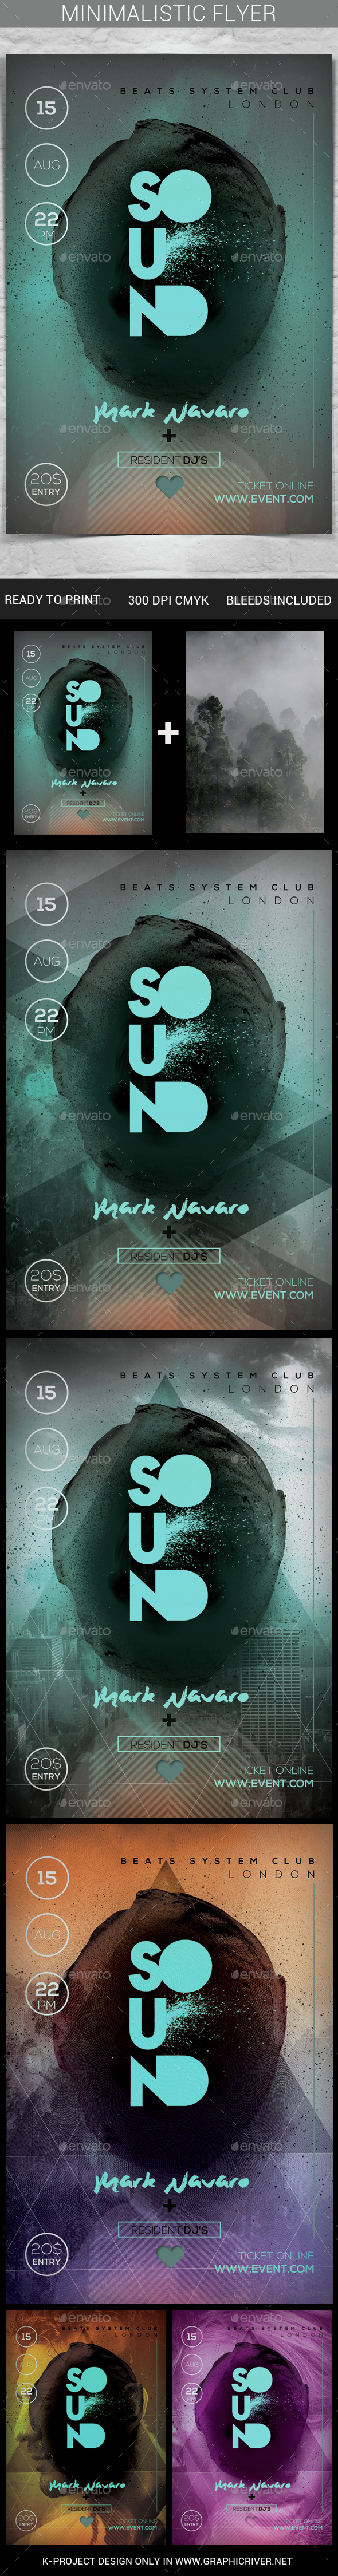 Minimalistic Flyer - Clubs & Parties Events